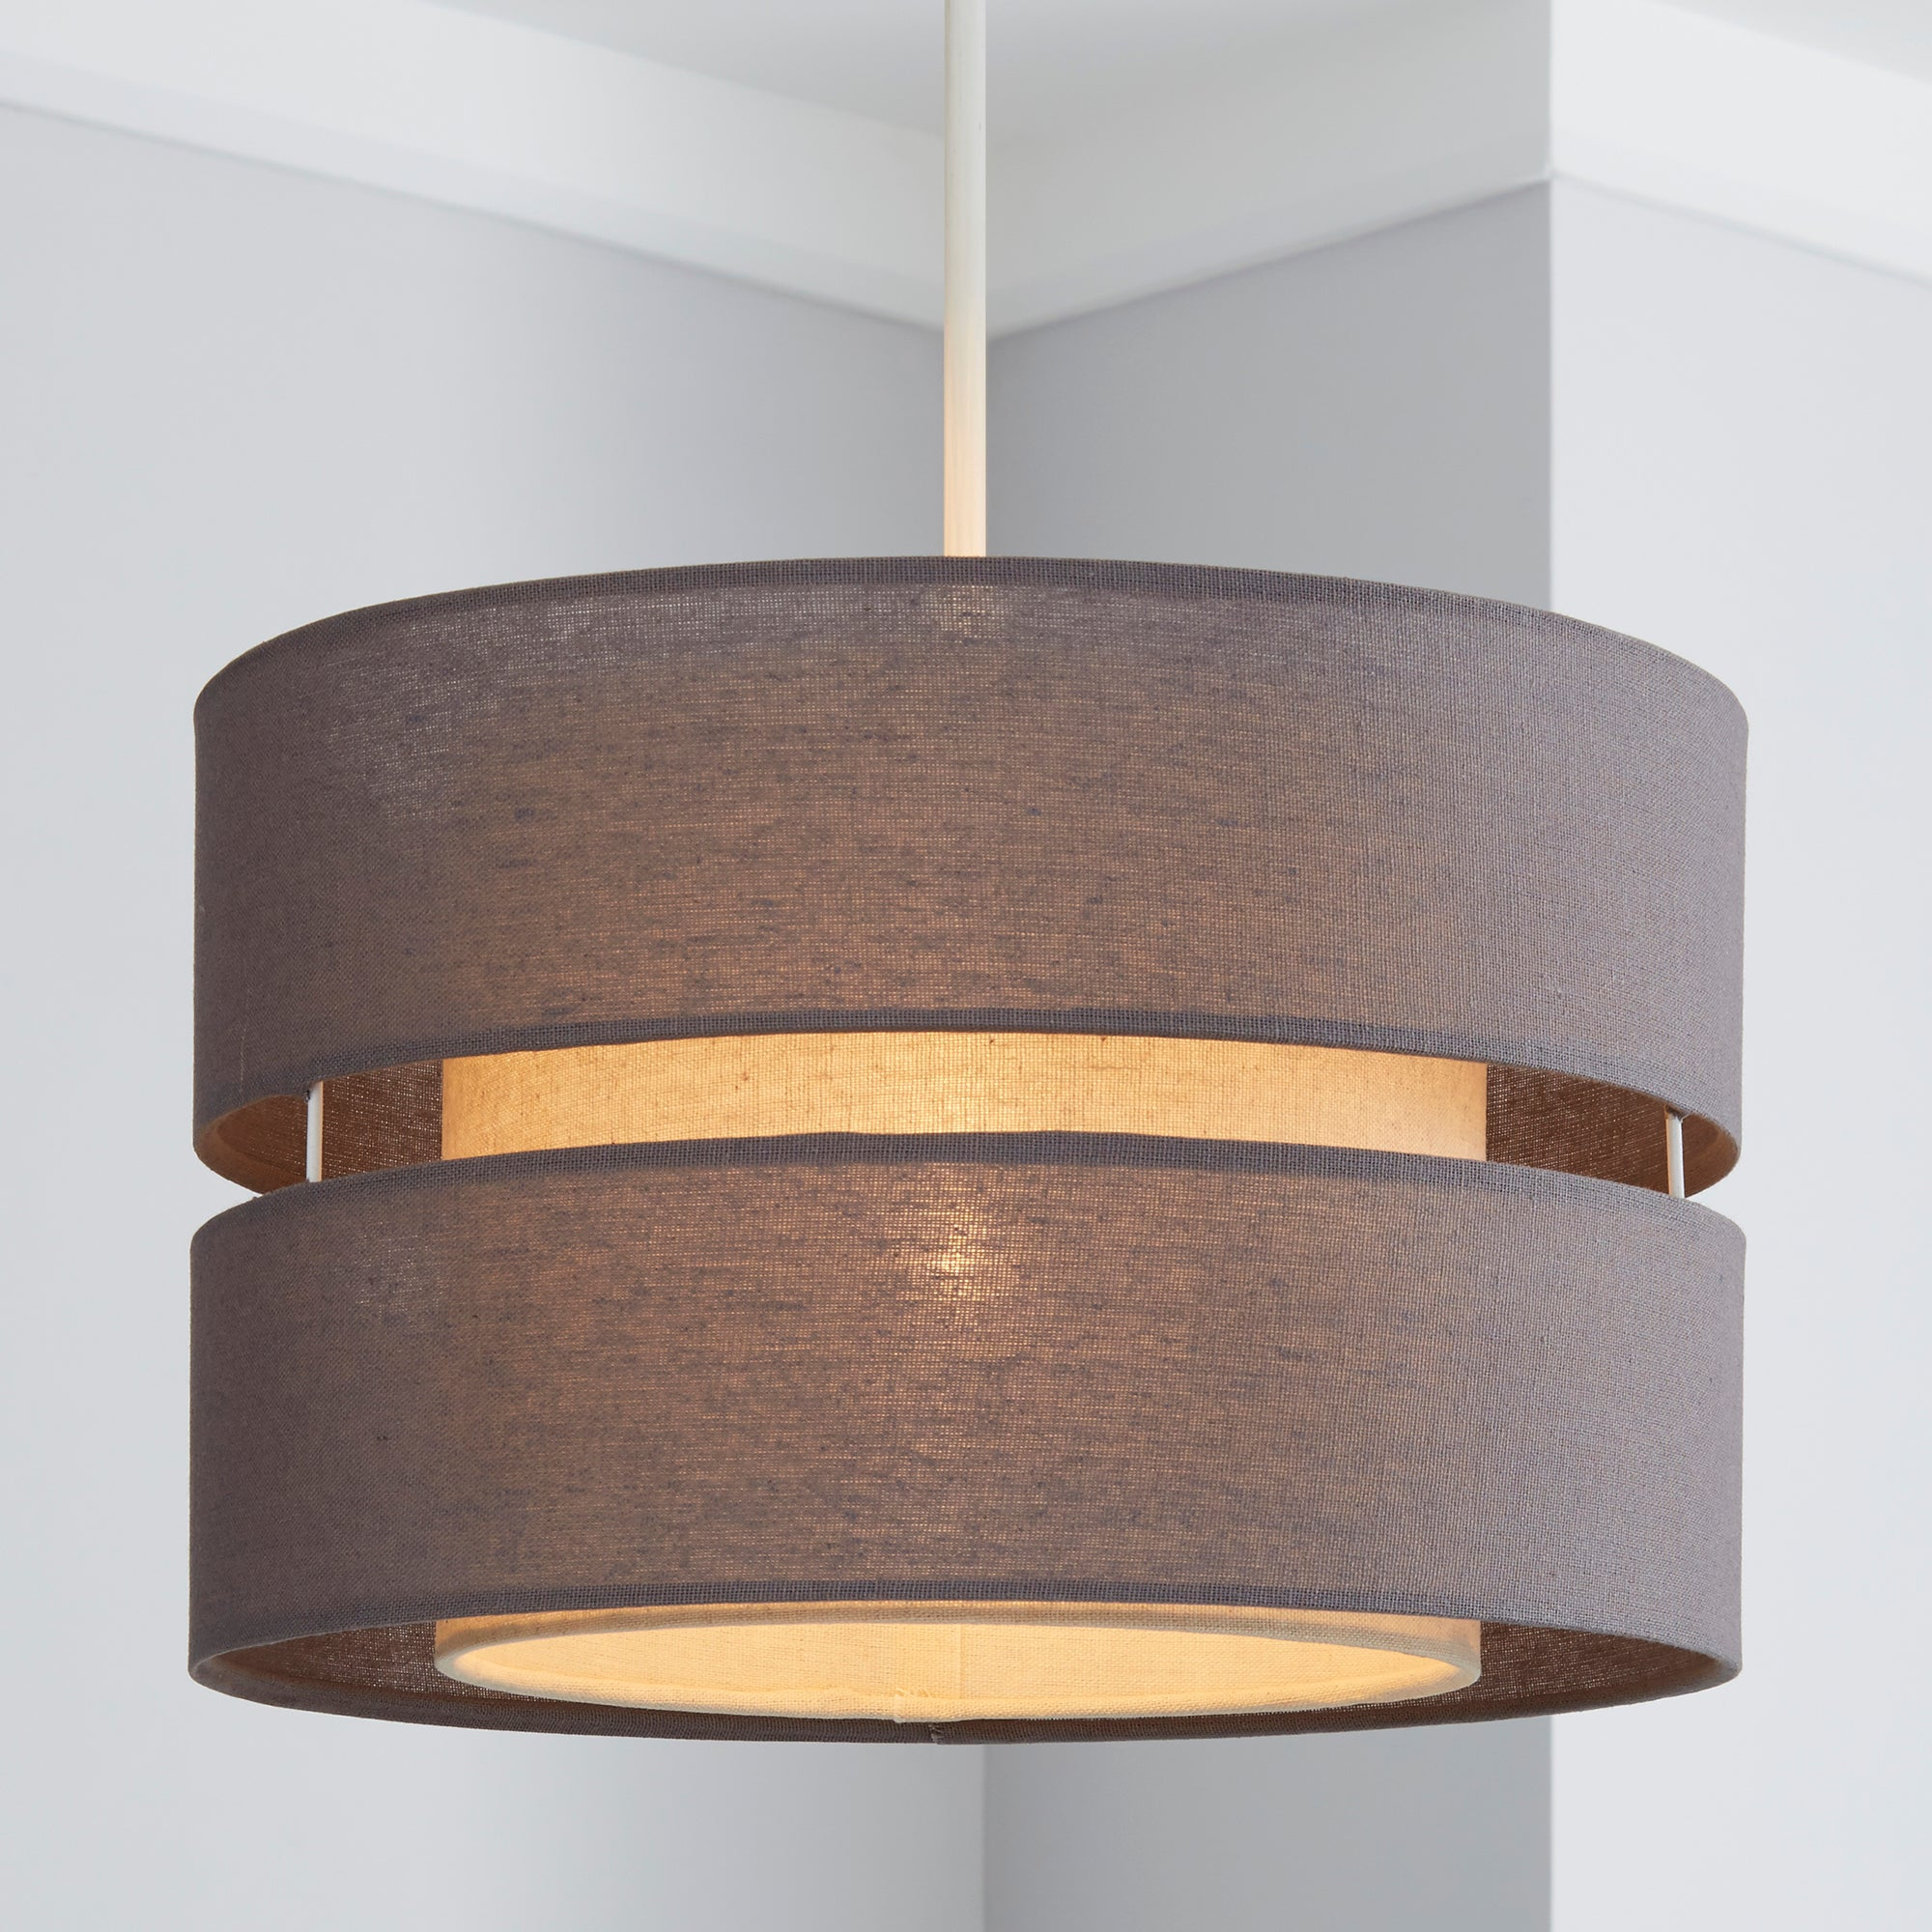 Dunelm Wall Lamp Shades : Frea Pendant Light Shade Dunelm